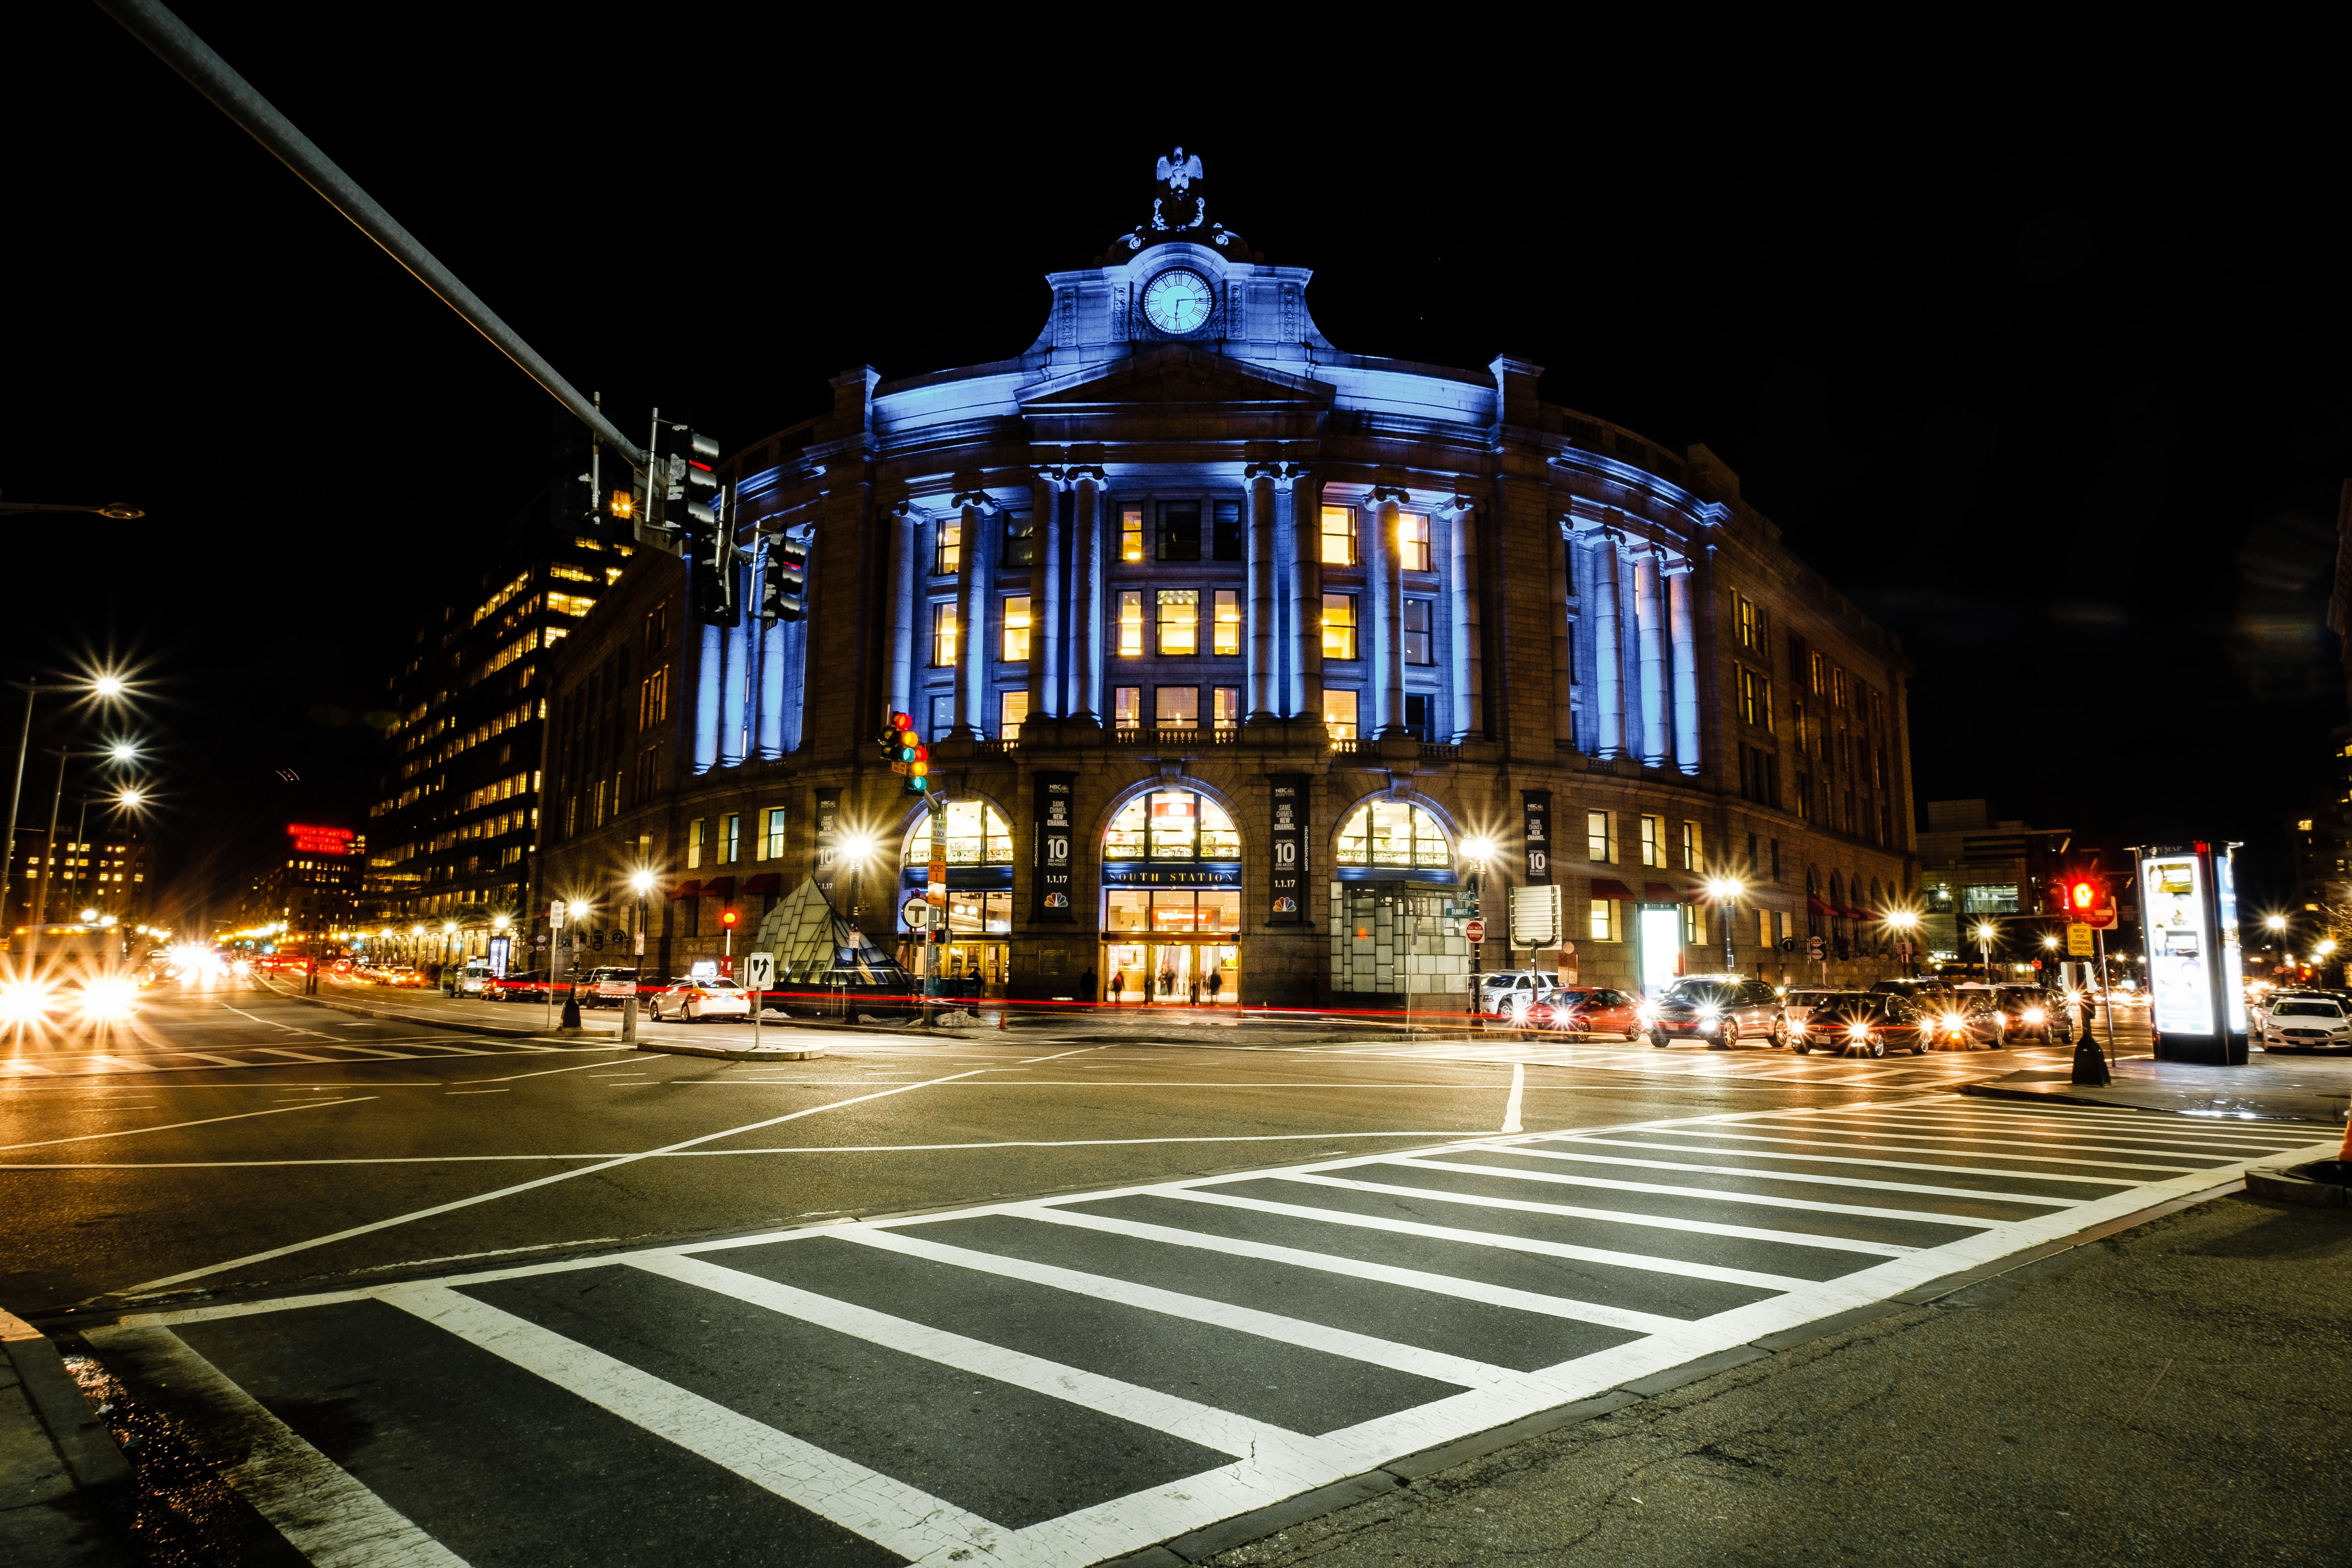 A perfect night-time image of a historic architecture in Boston, with a small clock tower